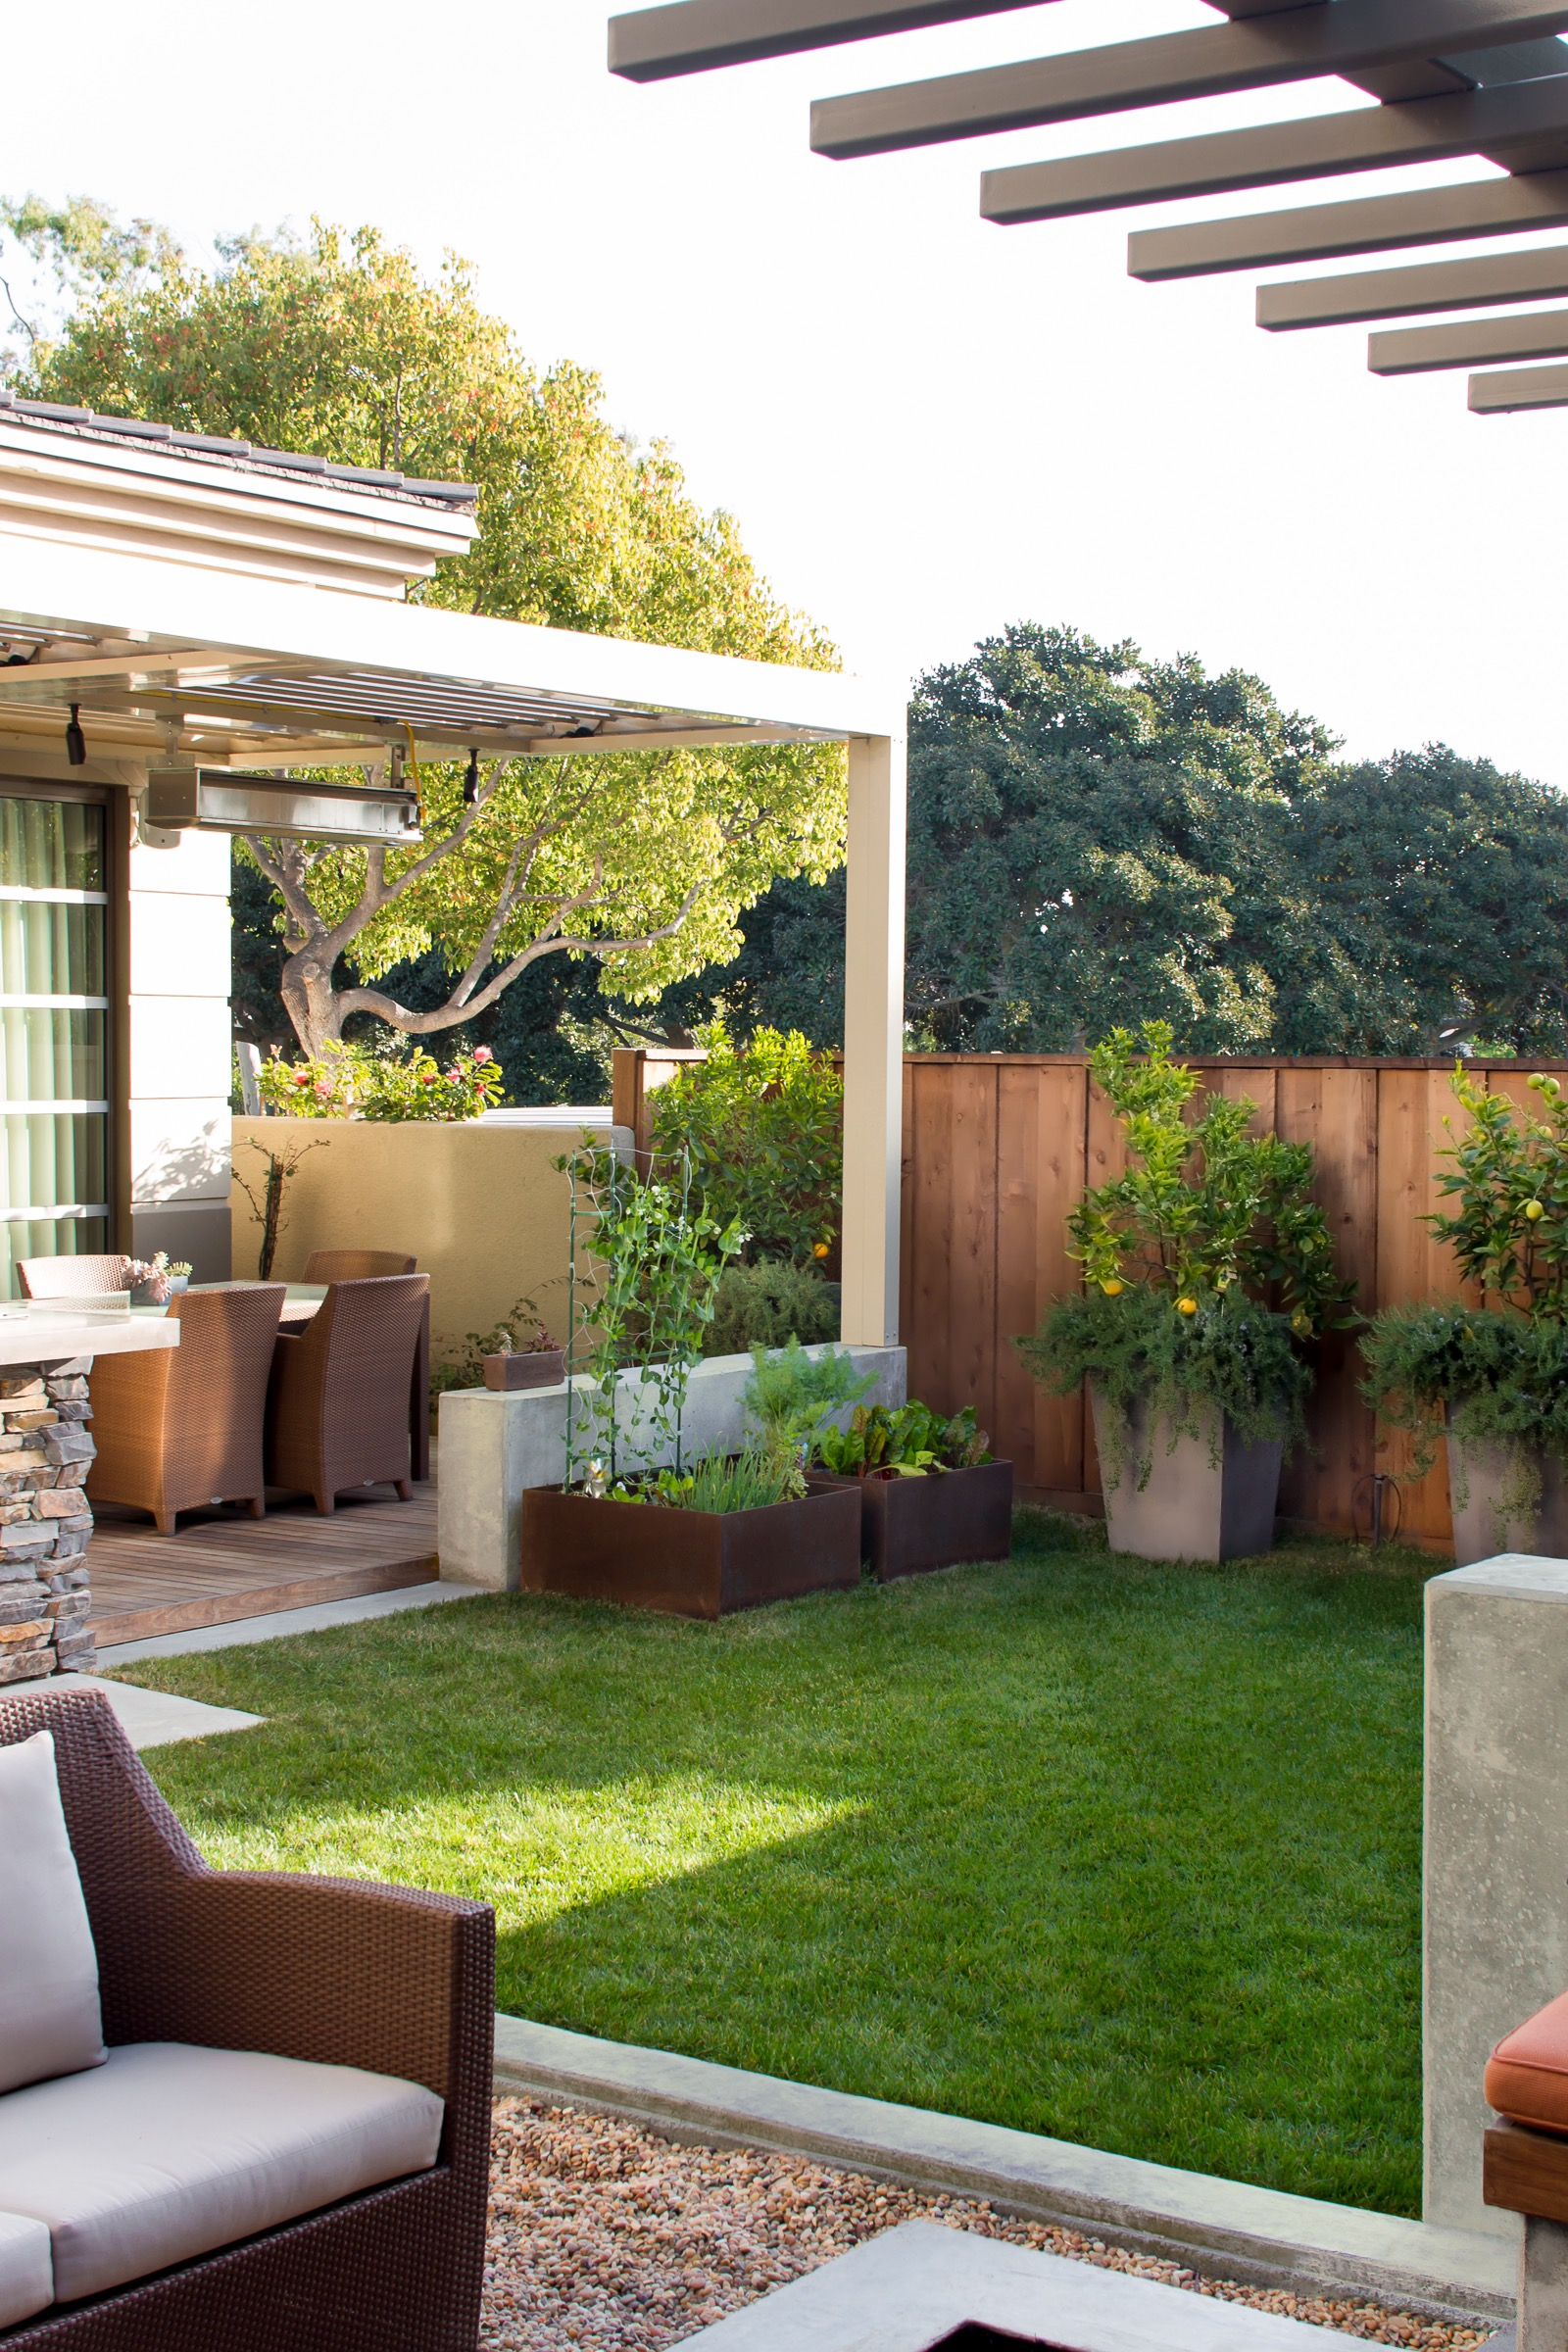 Contemporary Green Backyard Garden With Patio (Image 15 of 35)